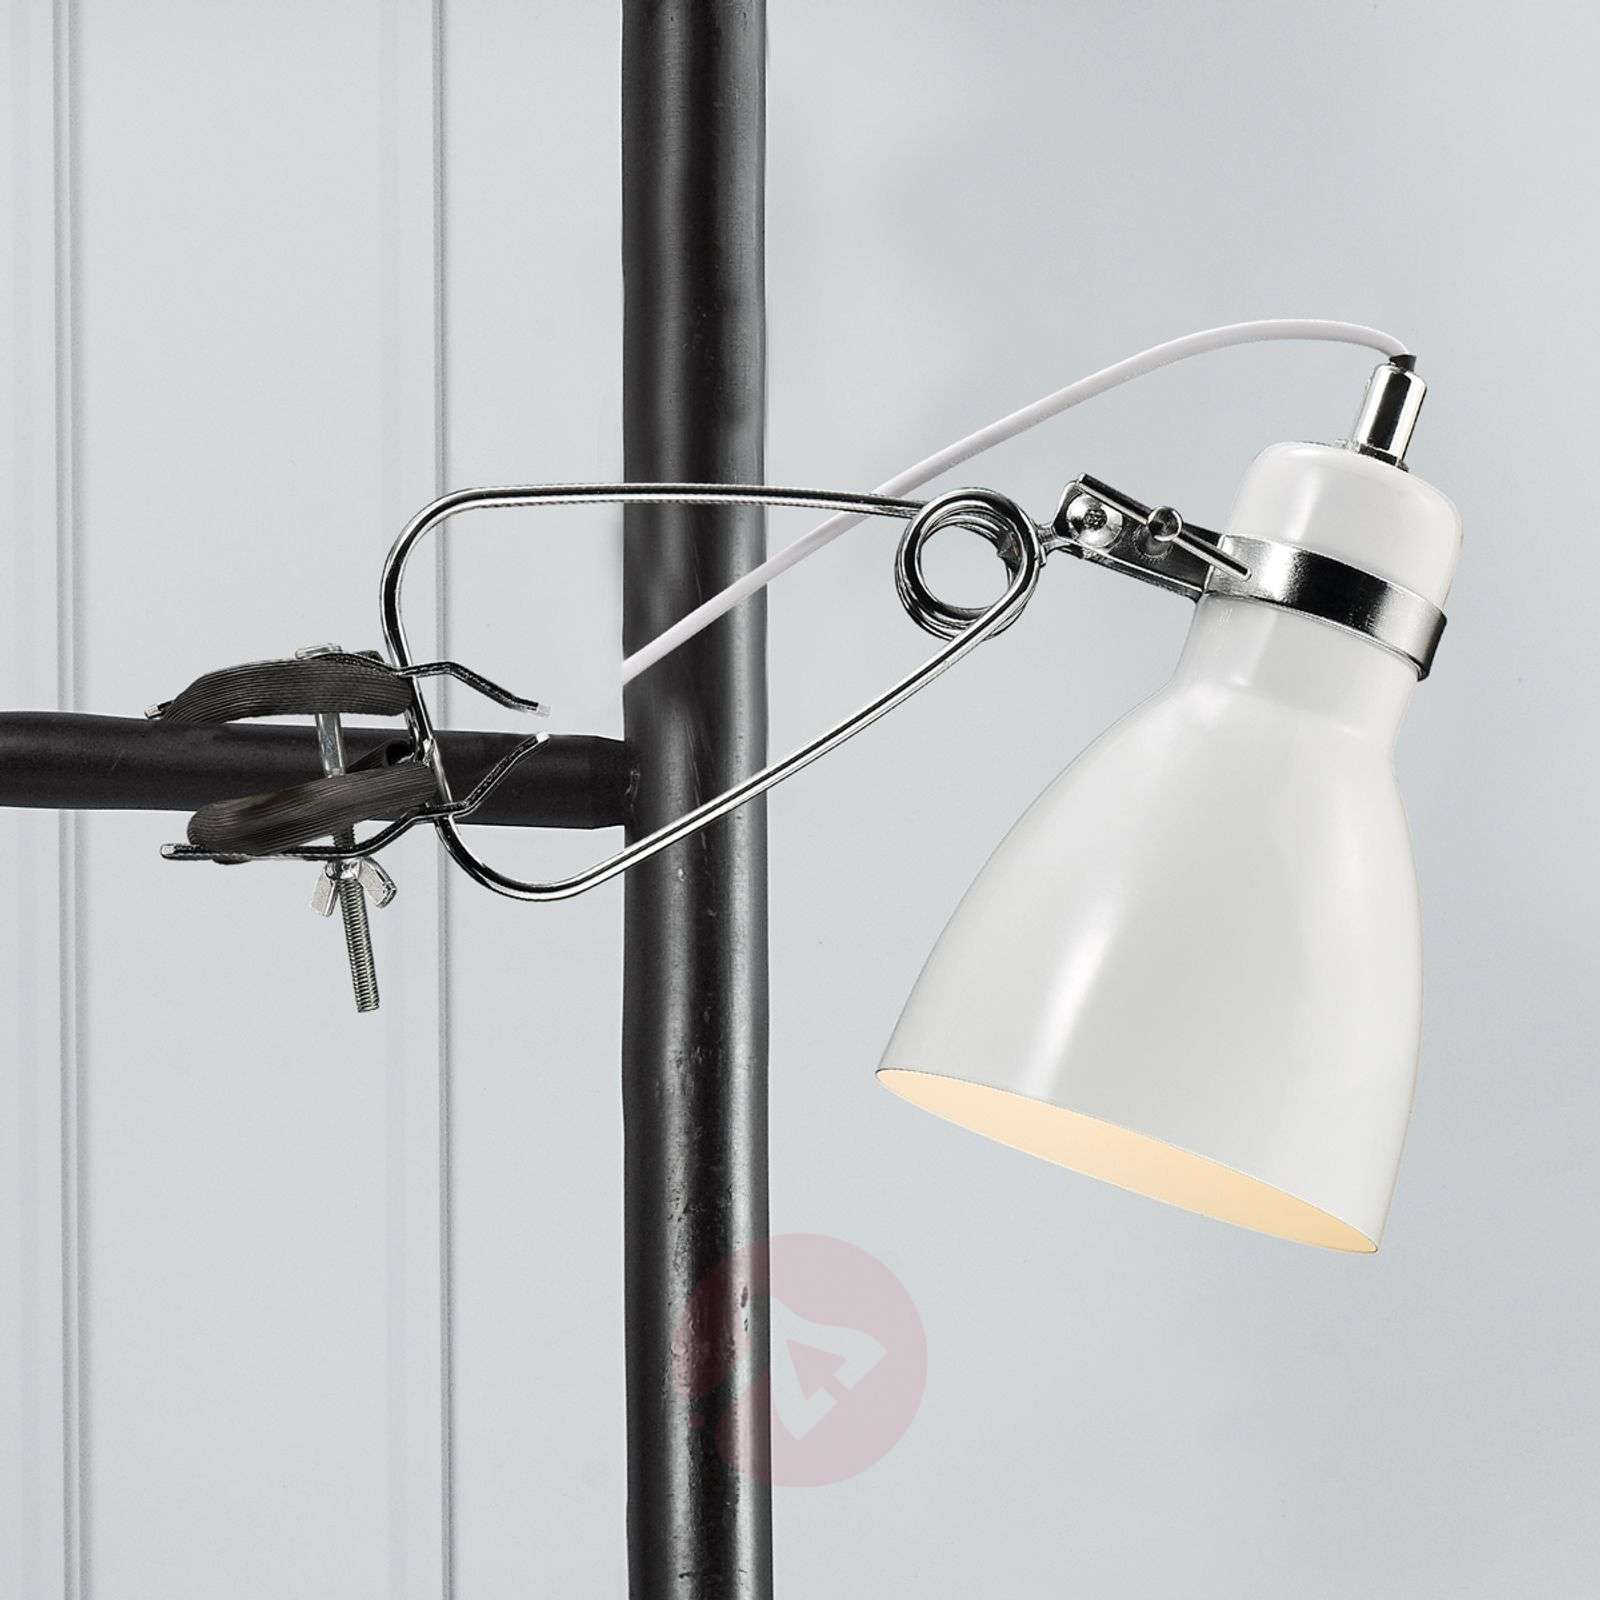 Appealing clip-on light Clone-7005608X-06